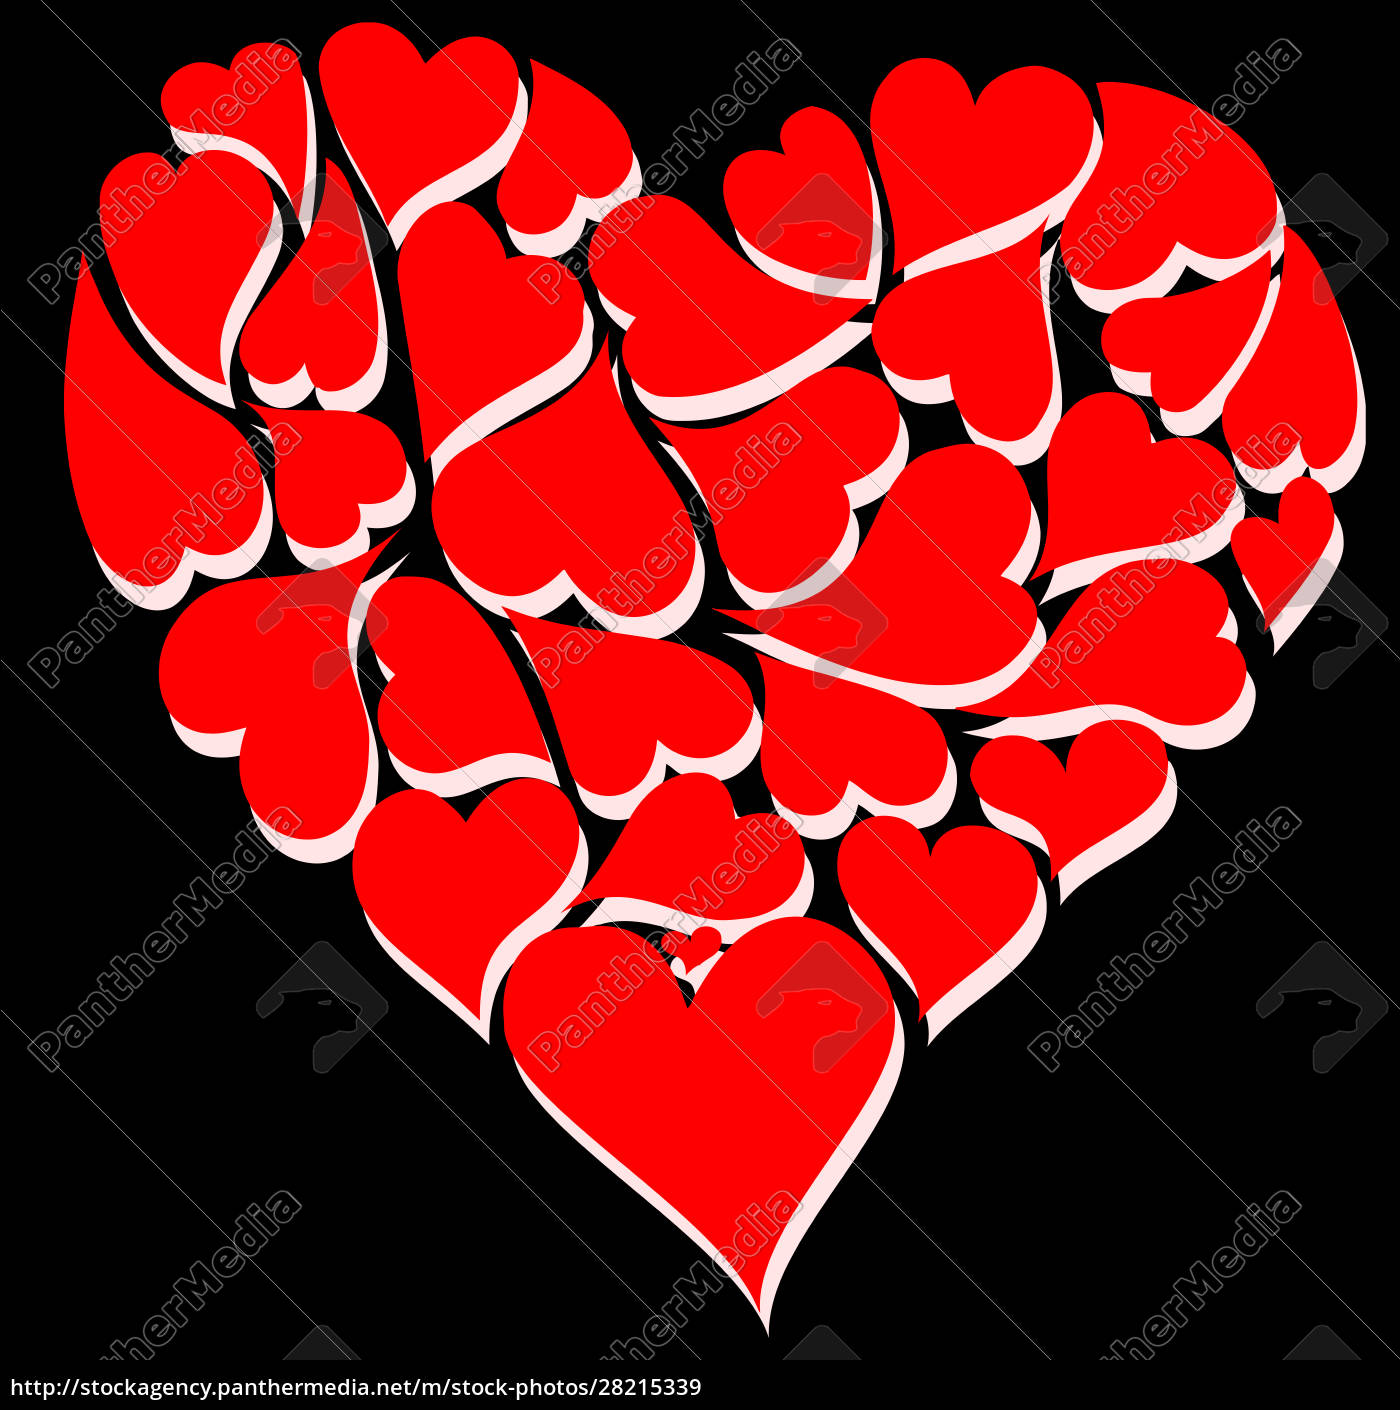 red, heart, shapes, with, shadow, illustration - 28215339